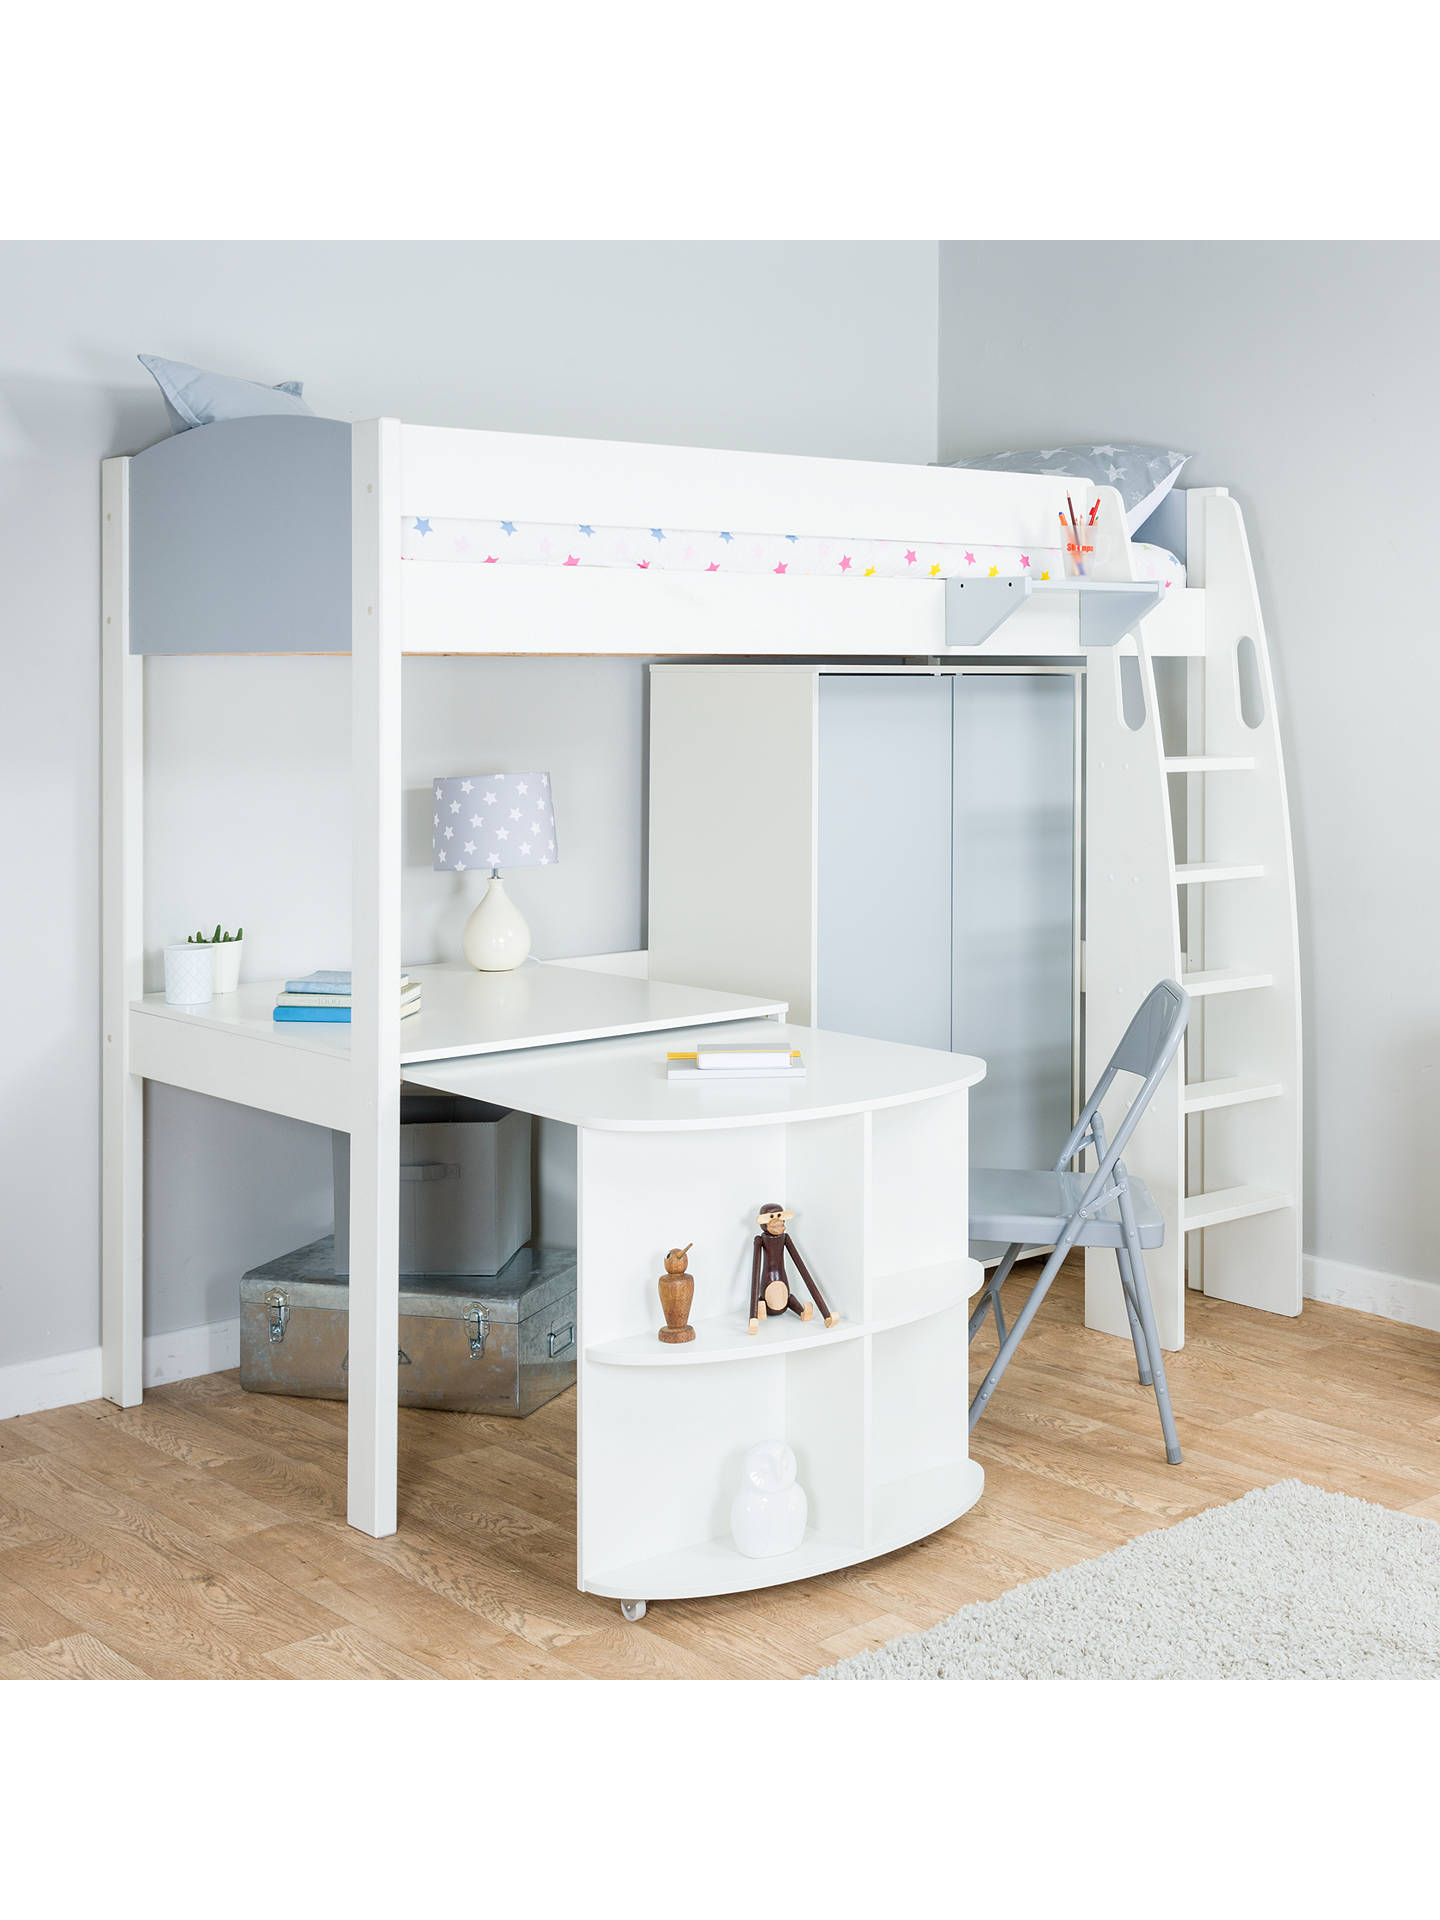 BuyStompa Uno S Plus High-Sleeper Bed with Wardrobe and Pull-Out Desk, Grey Online at johnlewis.com